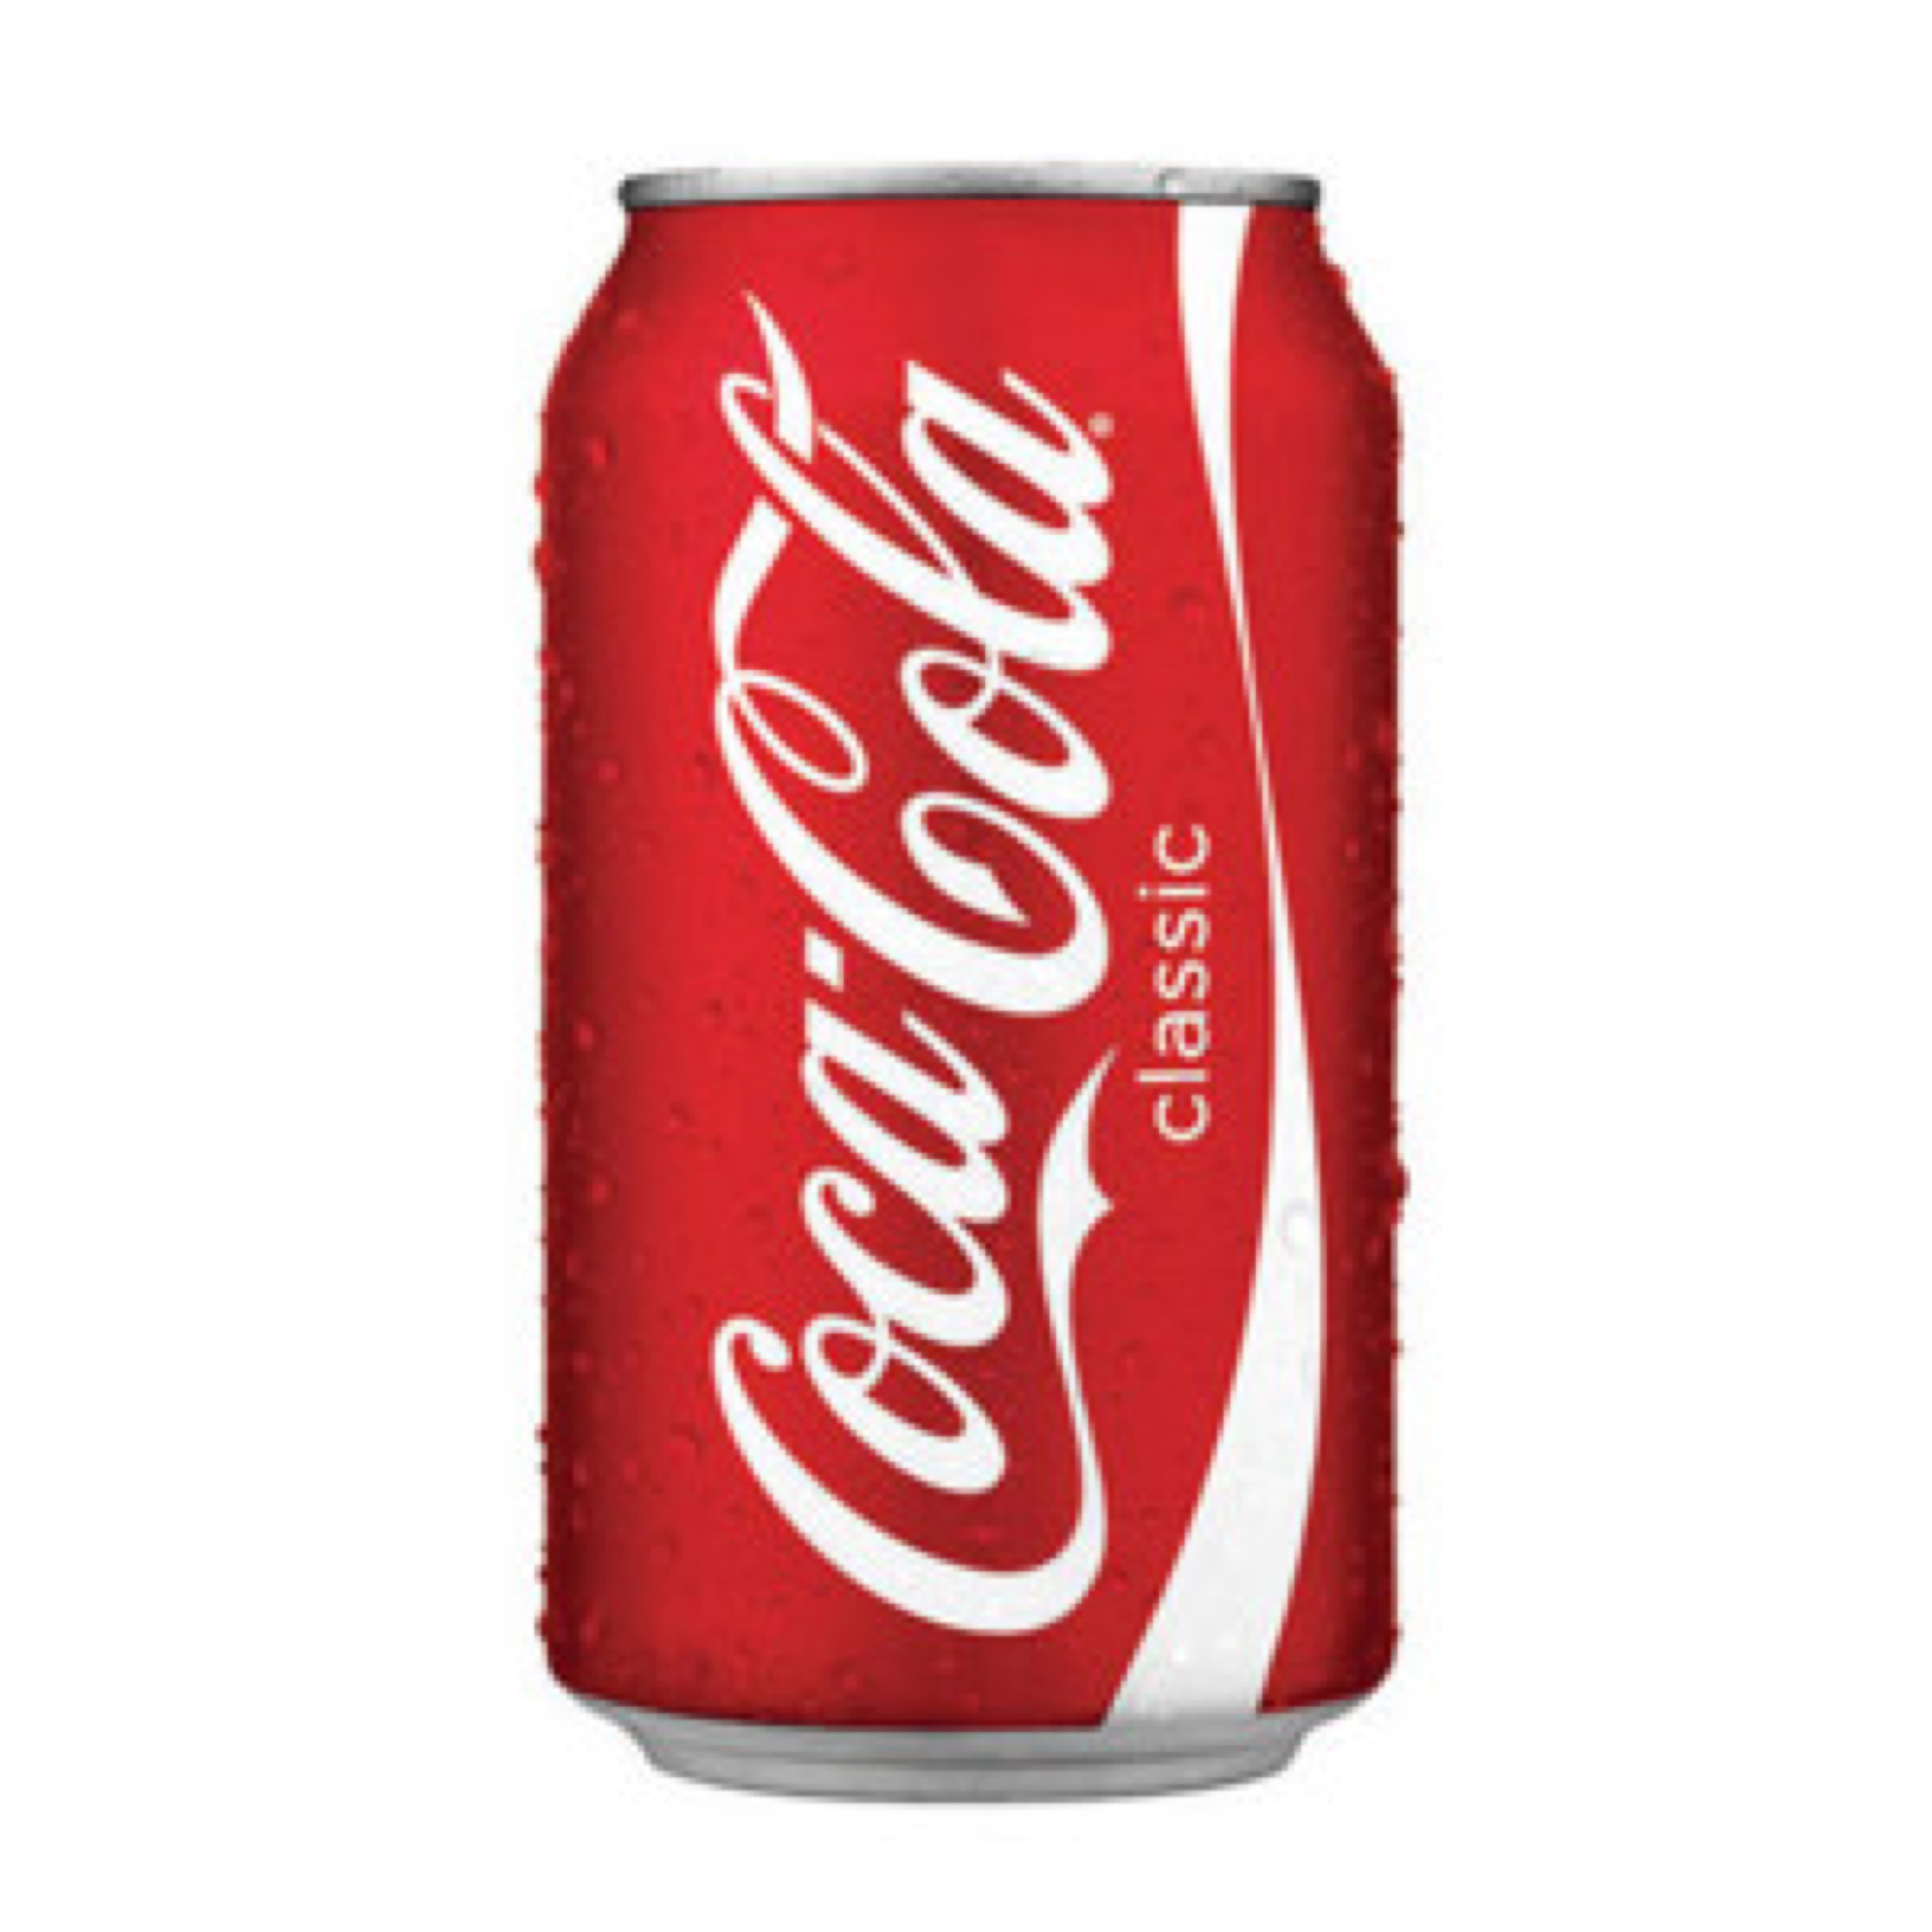 blog image - coke